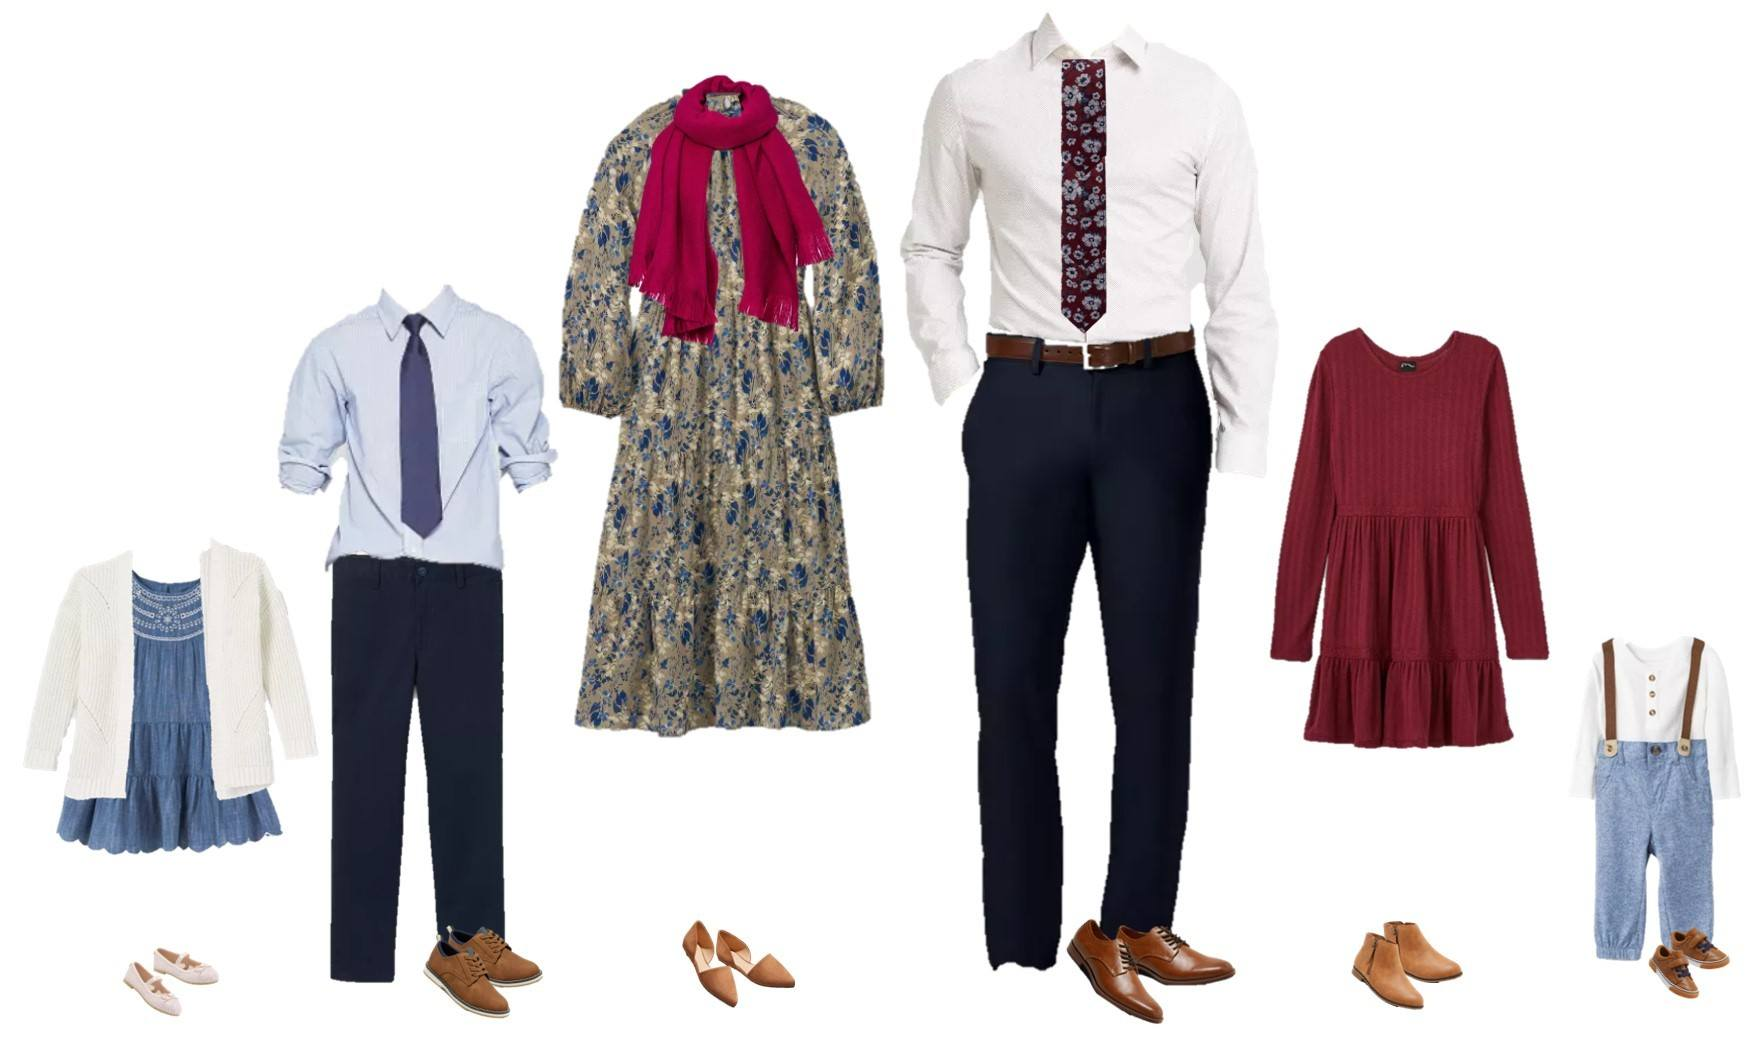 family holiday photo outfits - blue, burgundy and white theme